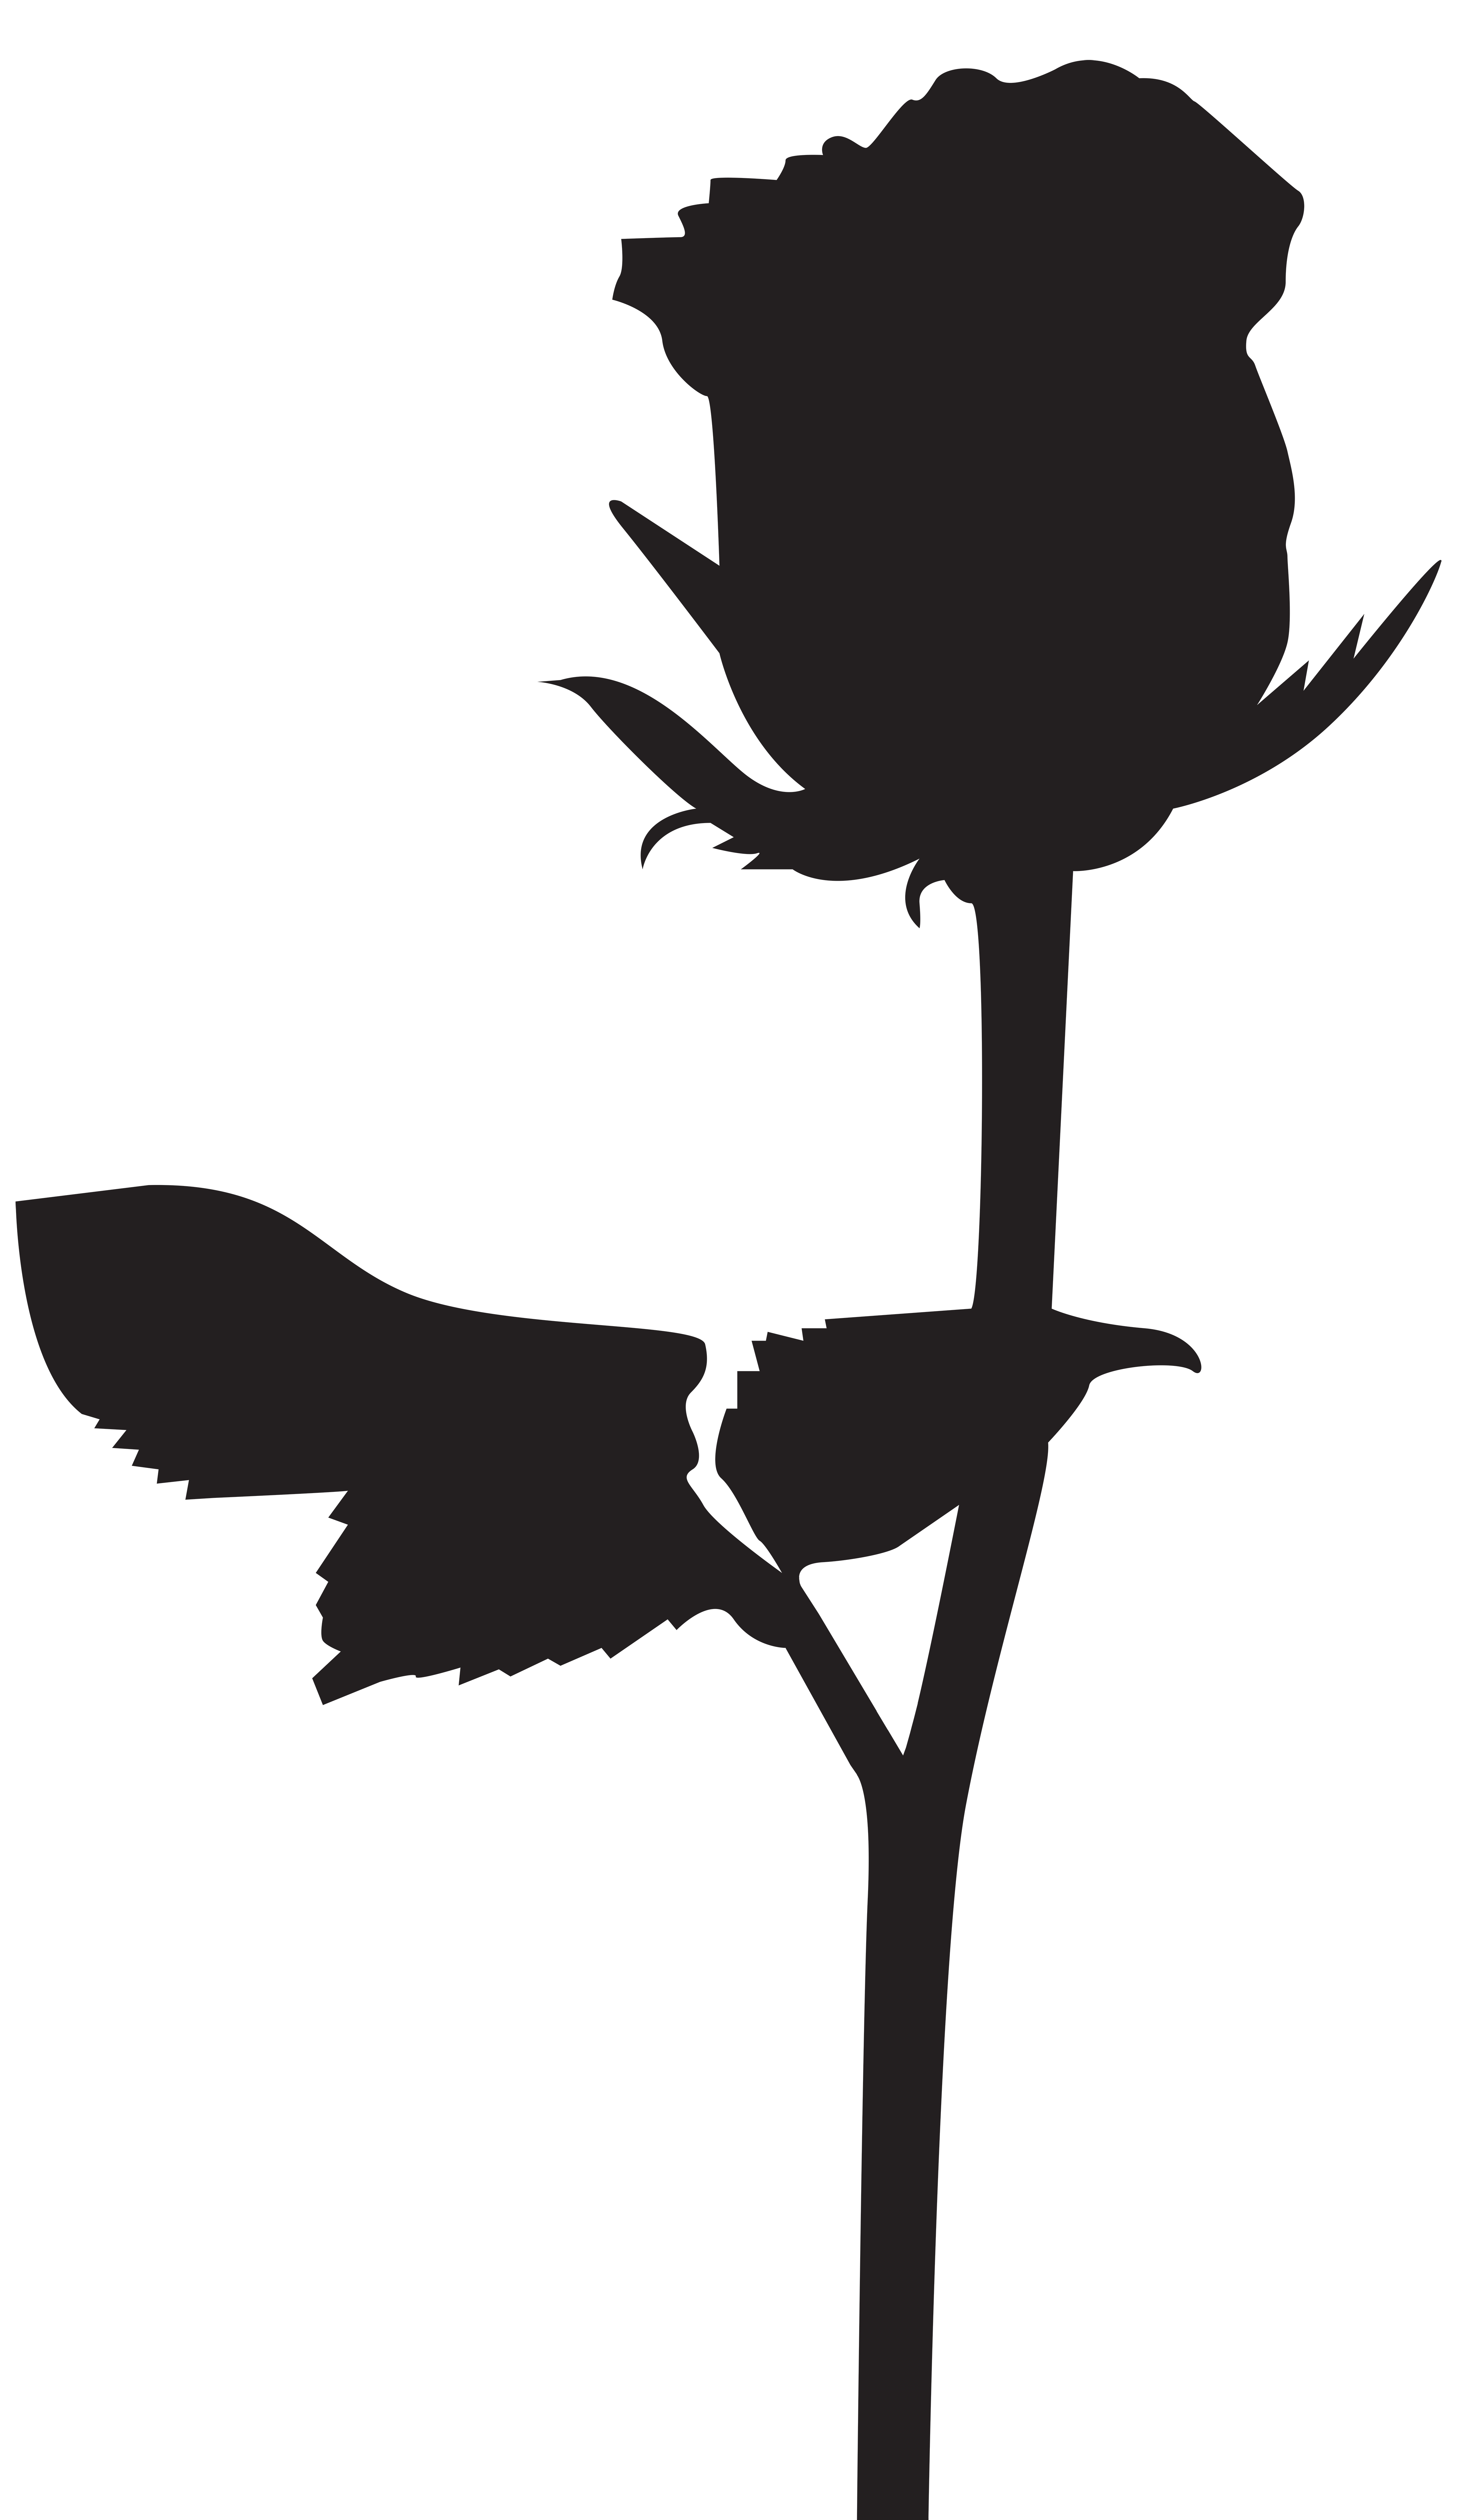 Rose Silhouette Png - Rose Silhouette PNG Transparent Clip Art Image   Gallery ...